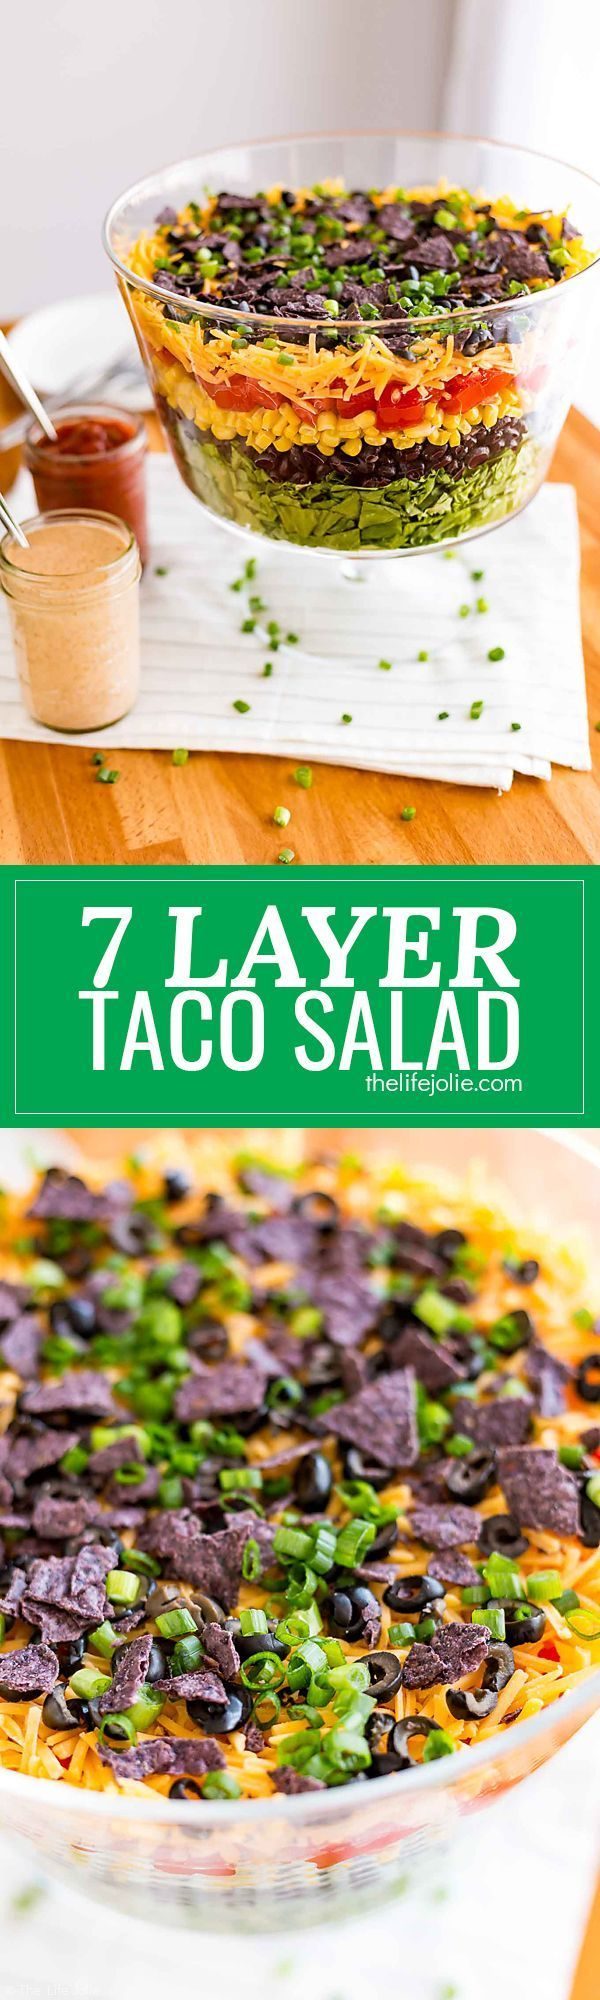 This 7 Layer Taco Salad is an easy recipe to make for parties. Full of delicious Mexican-inspired flavors it's got seven (or more) layers of things like beans, cheese, corn, tomatoes and is served with a creamy taco ranch dressing. Top it with chicken for